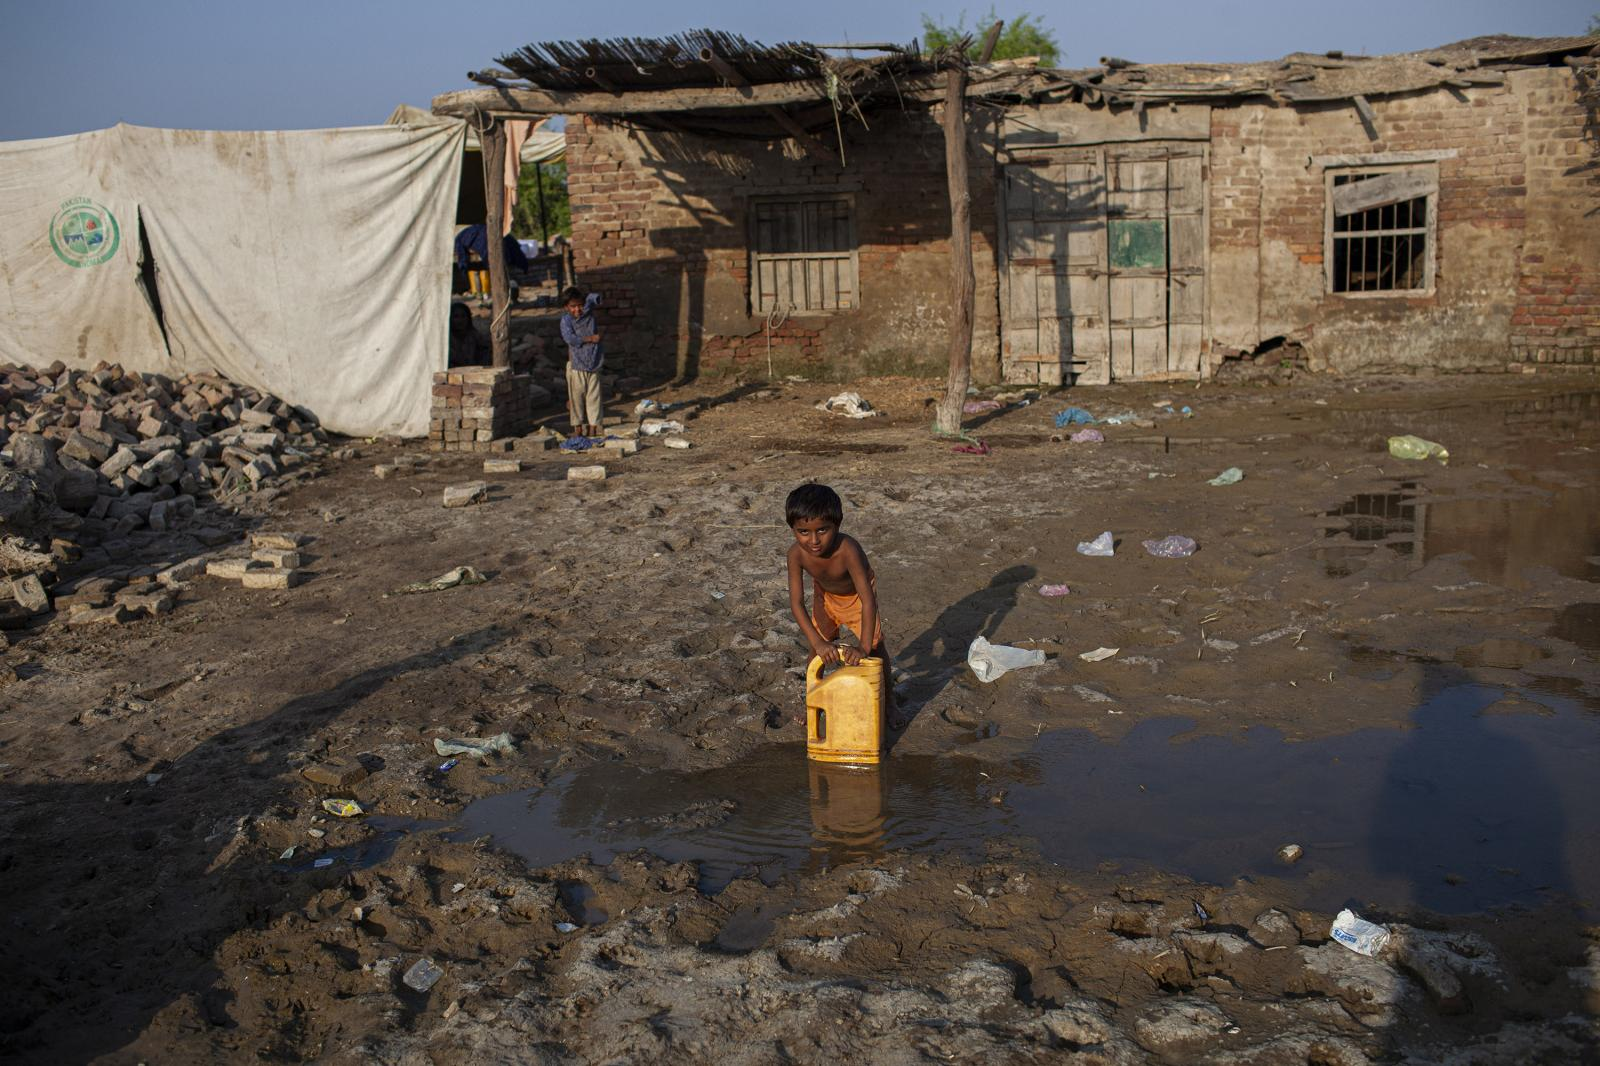 A young Pakistani IPD carries water after the floods in the province of Hyderabad.People's skin is constantly exposed to unsafe water, unhygienic conditions and sharp debris, making skin diseases one of the leading reasons for medical consultations for flood survivors. Diego Ibarra Sánchez for WHO